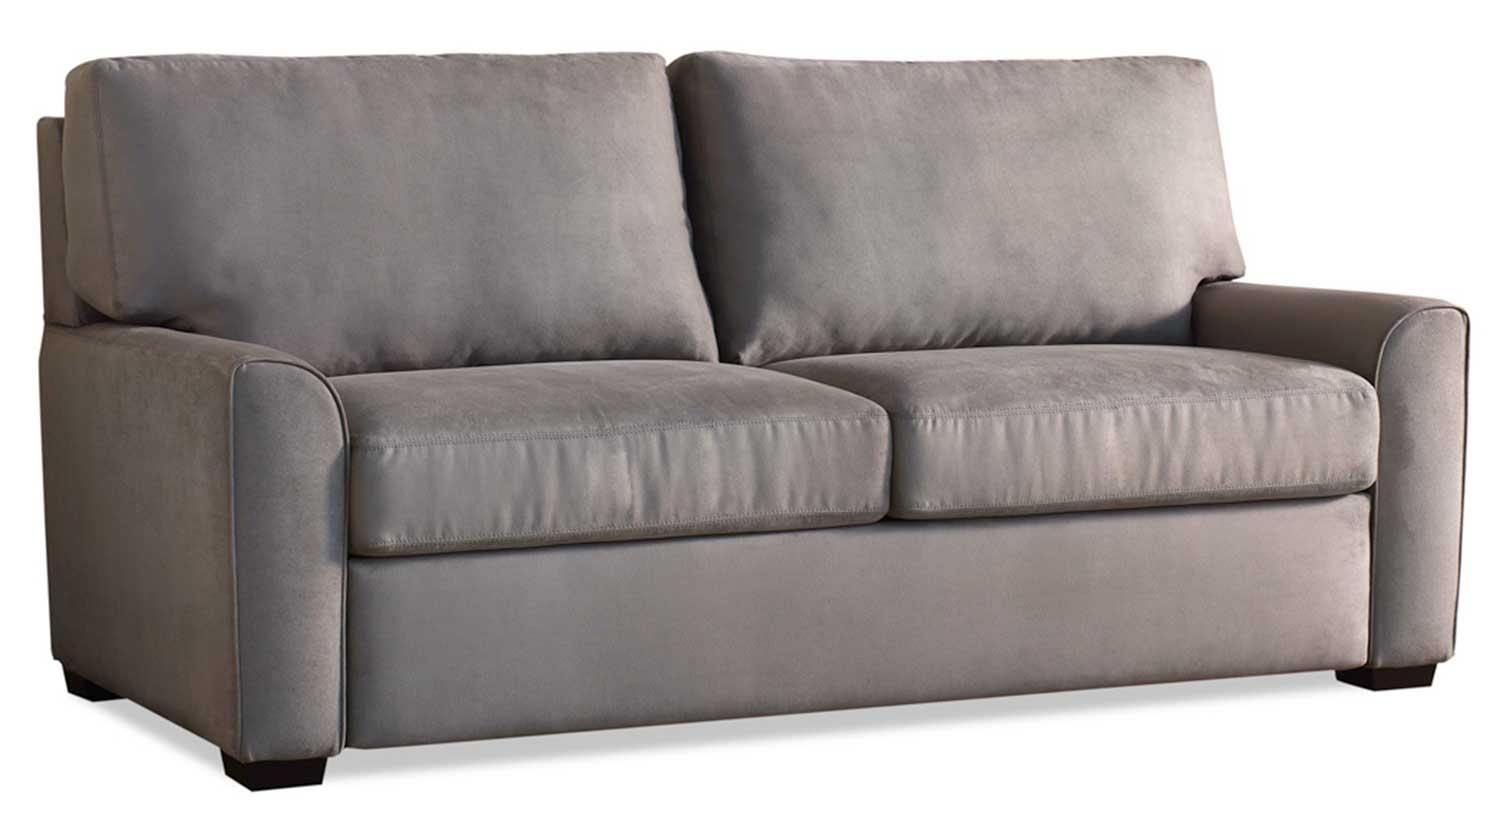 Circle Furniture – Ashton Comfort Sleeper | Sleep Sofas Ma Within Comfort Sleeper Sofas (View 20 of 22)